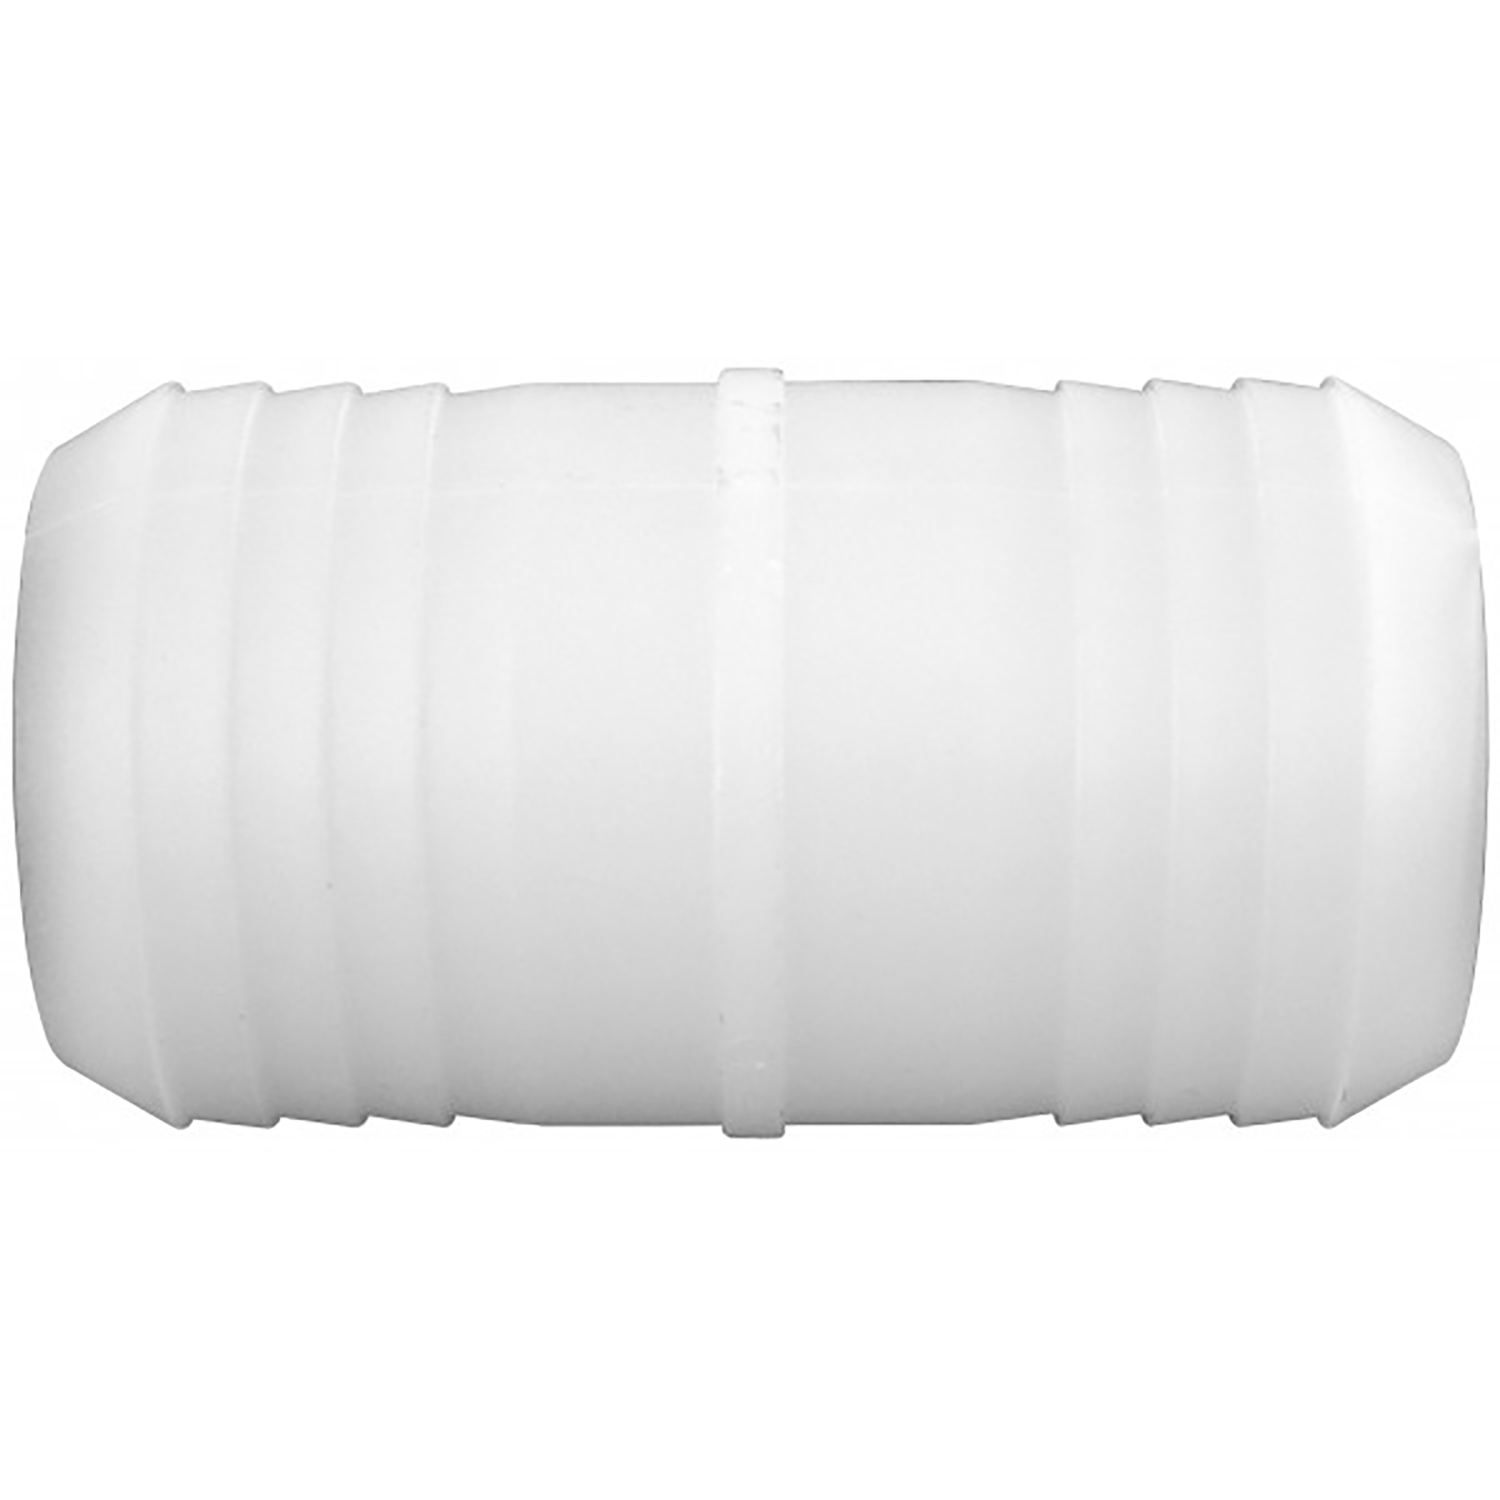 Green Leaf  Nylon  Hose Mender  3/8 in. Dia. x 1/2 in. Dia. White  1 each